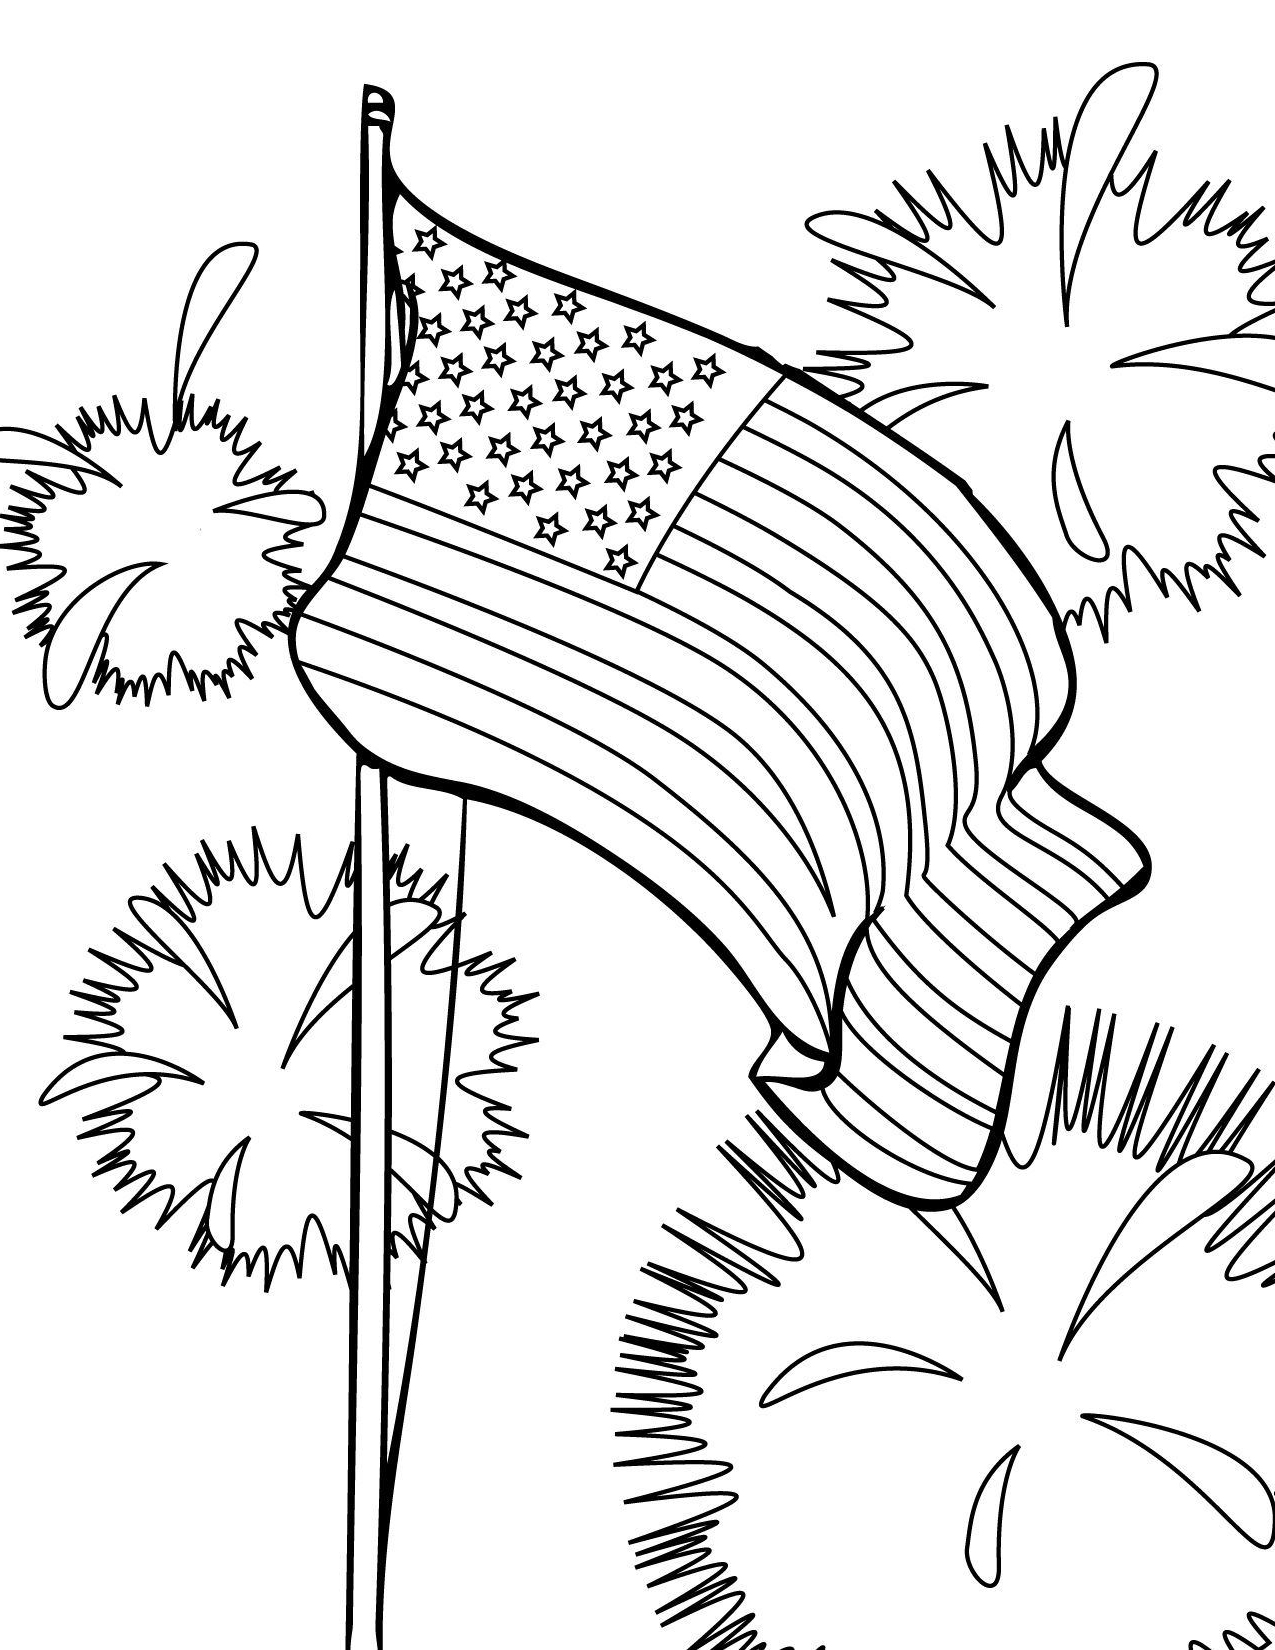 american flag coloring pages get this american flag coloring pages kids printable 36481 pages coloring flag american